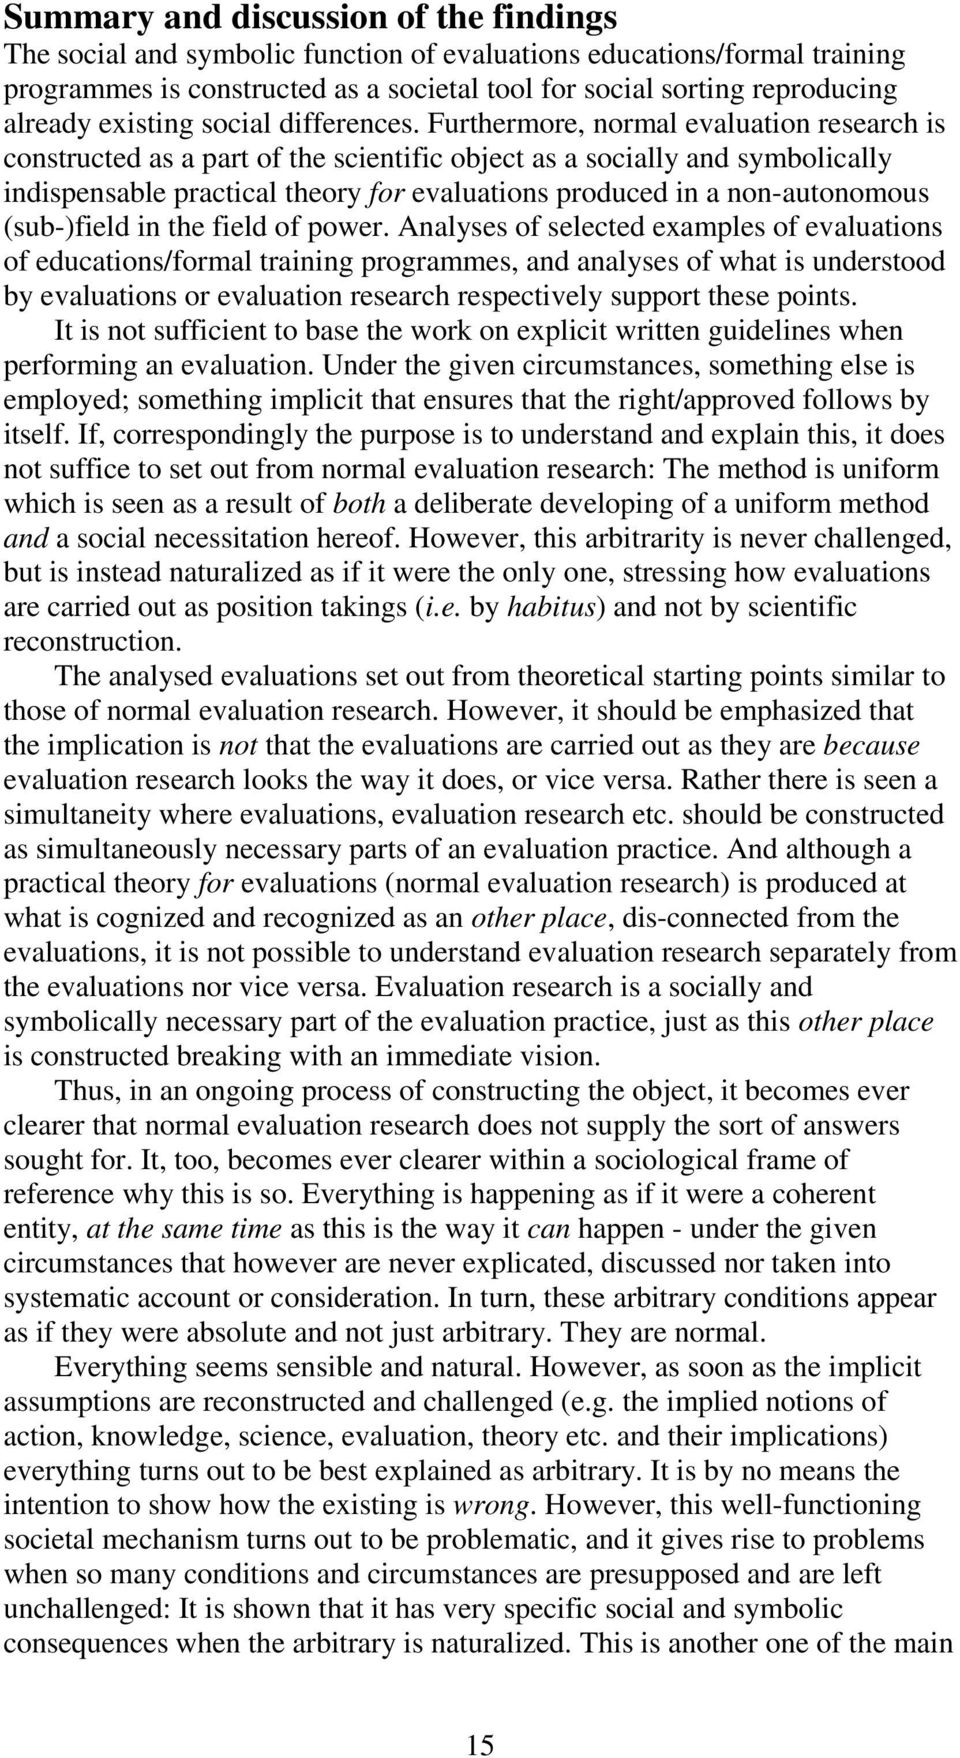 Furthermore, normal evaluation research is constructed as a part of the scientific object as a socially and symbolically indispensable practical theory for evaluations produced in a non-autonomous